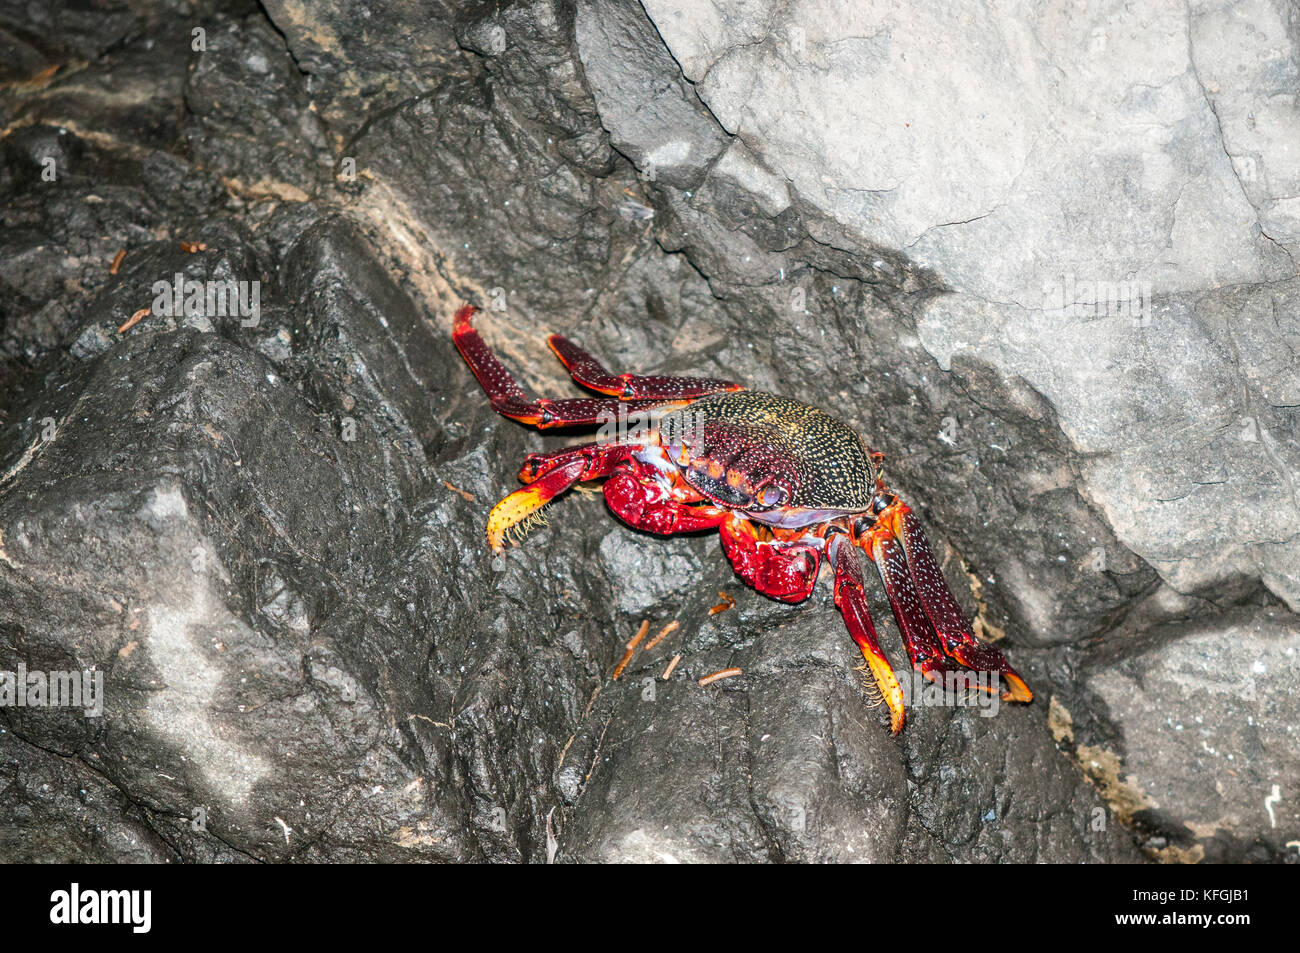 atlantic rock crab (Grapsus grapsus adscensionis) lying on a rock inside a cave, Fuerteventura, Canary Islands, Spain Stock Photo